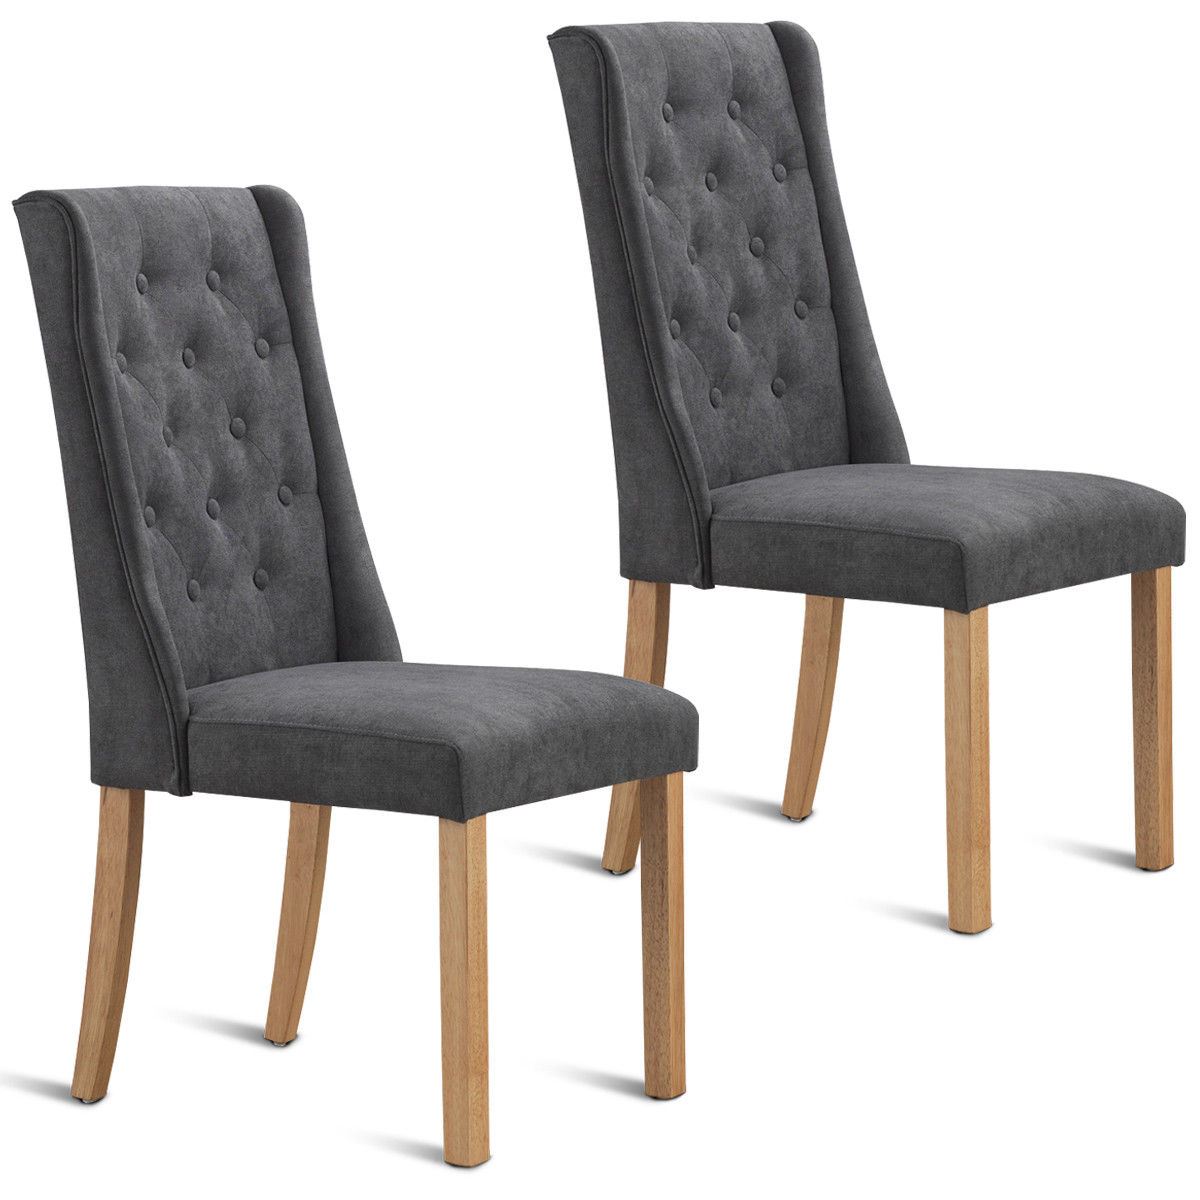 Gymax Set Of 2 Fabric Dining Chairs Armless Tufted Accent Chair Living Room Furniture